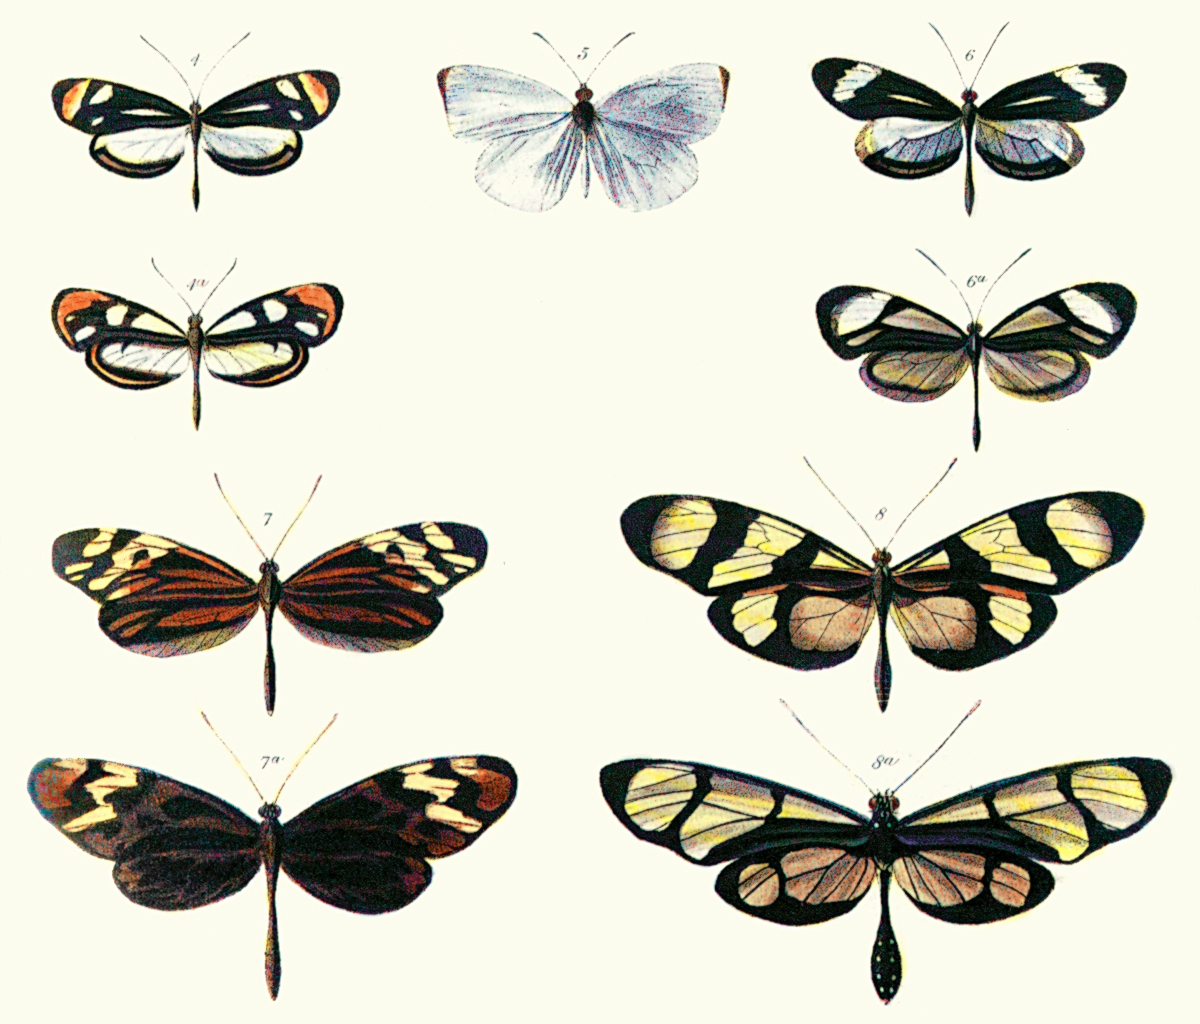 Plate from Bates (1862) illustrating Batesian ...